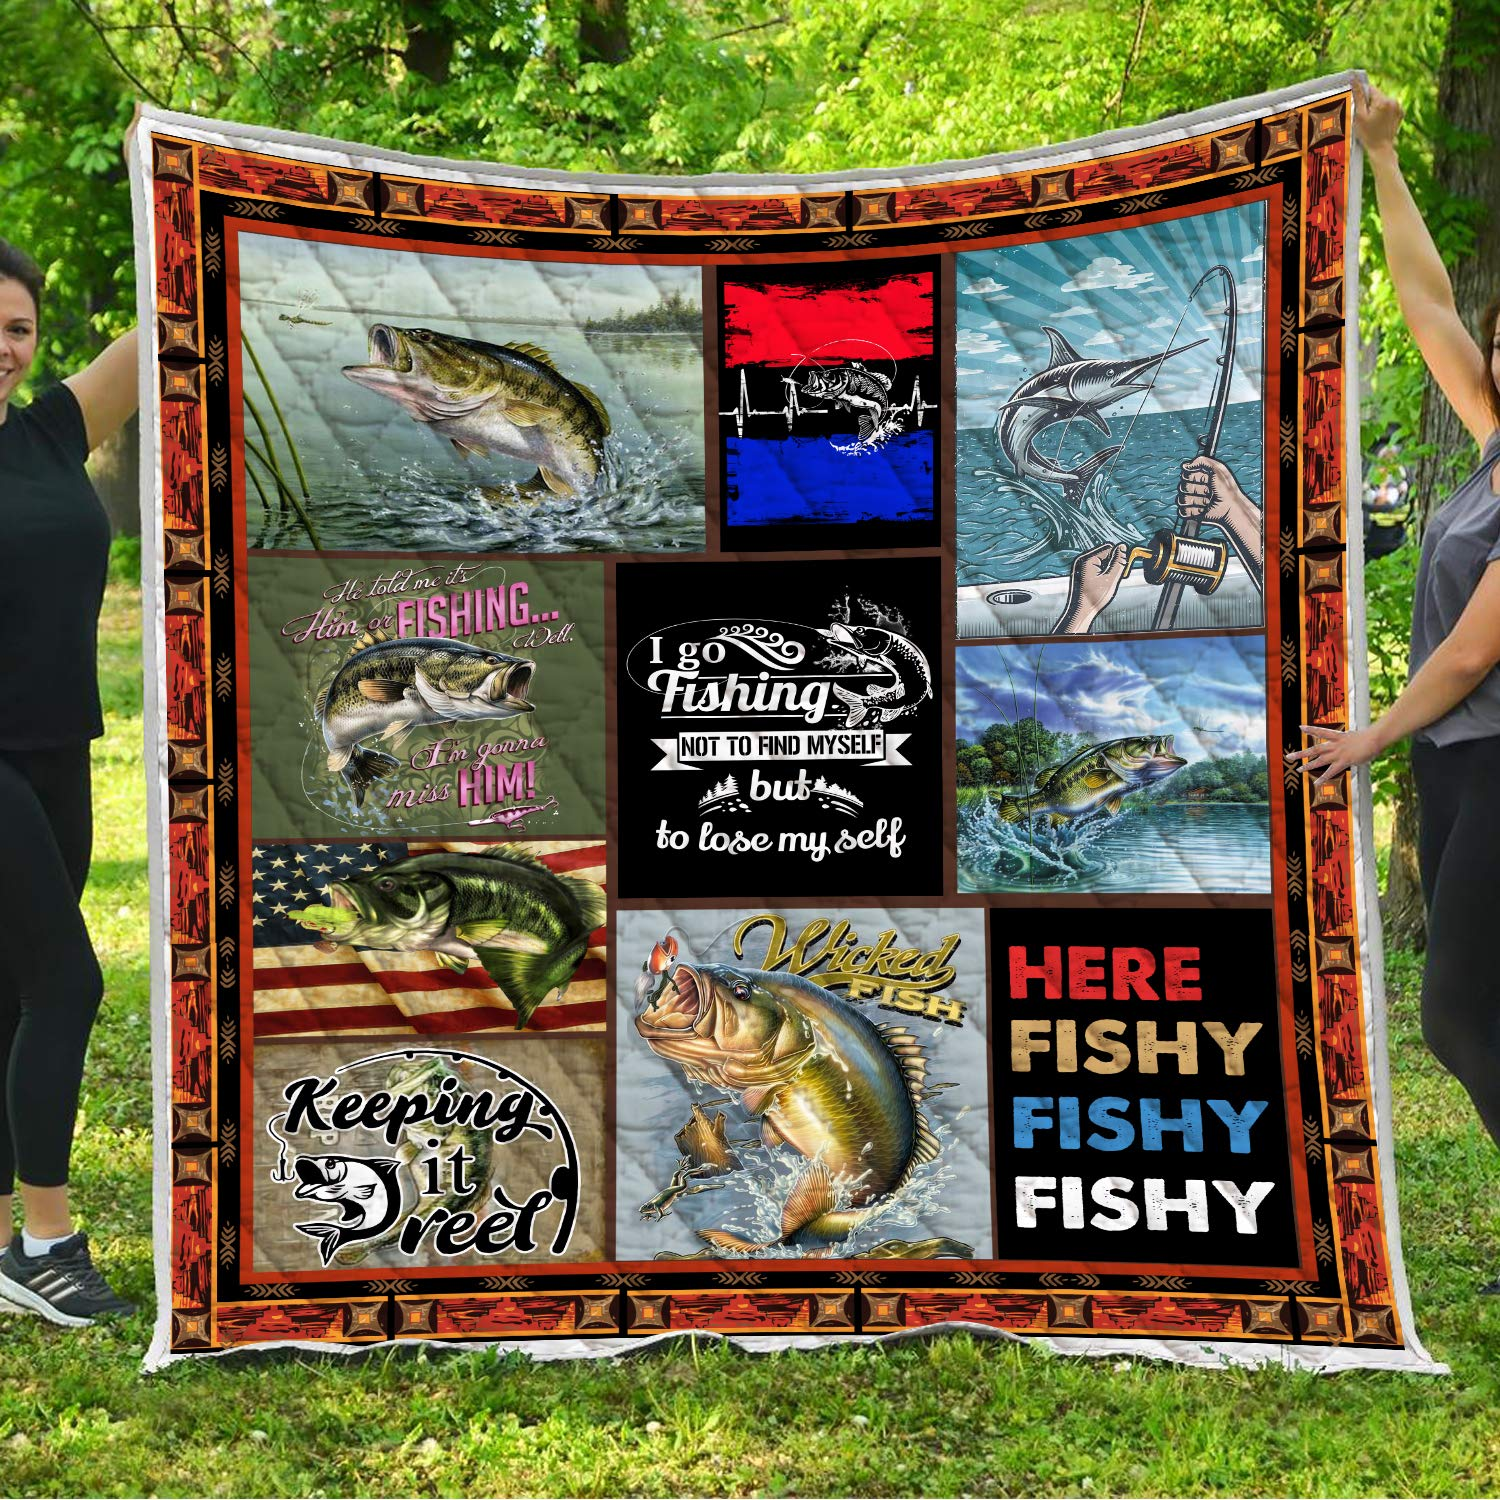 Fishing Quilt Pattern Blanket Comforters with Reversible Cotton King Queen Full Twin Size Birthday Christmas Quilted Gifts for Dad Daddy Grandpa Papa Grandfather Husband Son Daughter Kids Wife by VTH Global